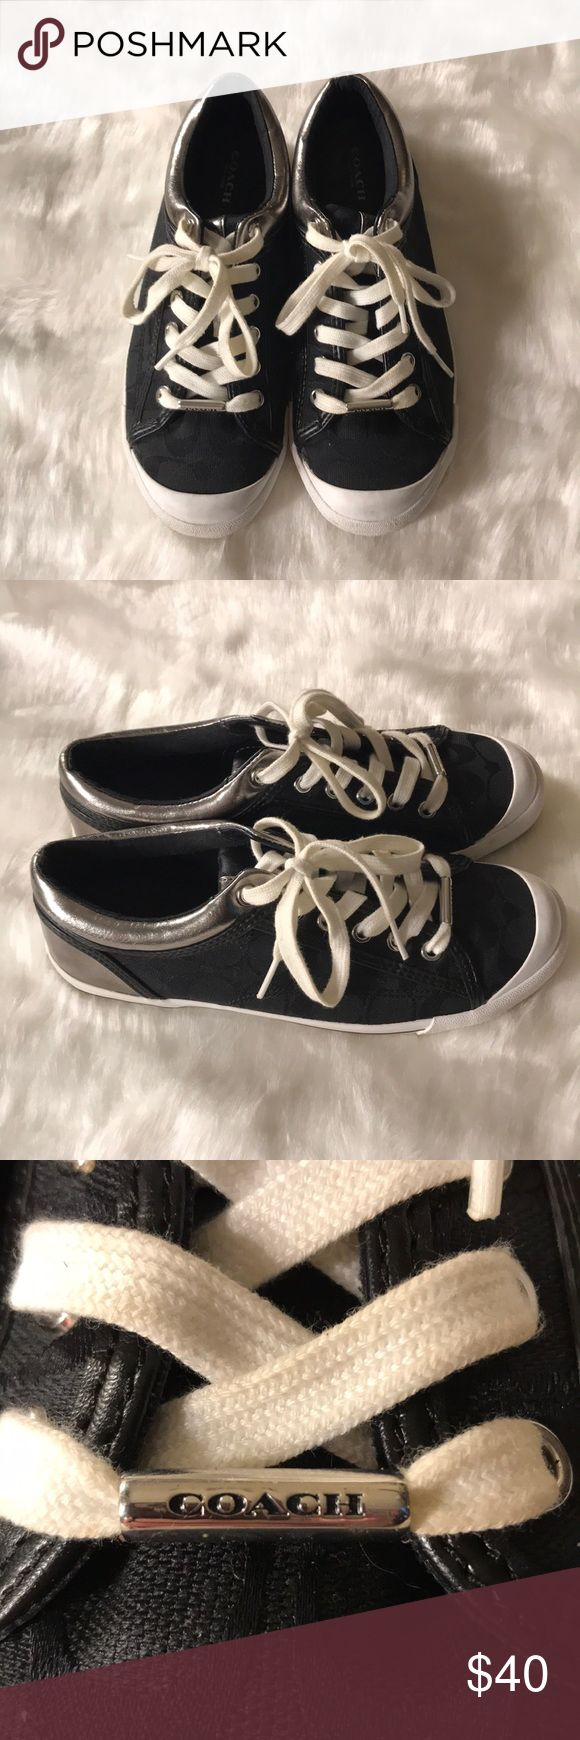 Coach Tennis Shoes Coach tennis shoes Francesca. They are black and silver with a white sole.  Size 7 1/2.  I wore them twice but hey are just too big for me. Coach Shoes Sneakers